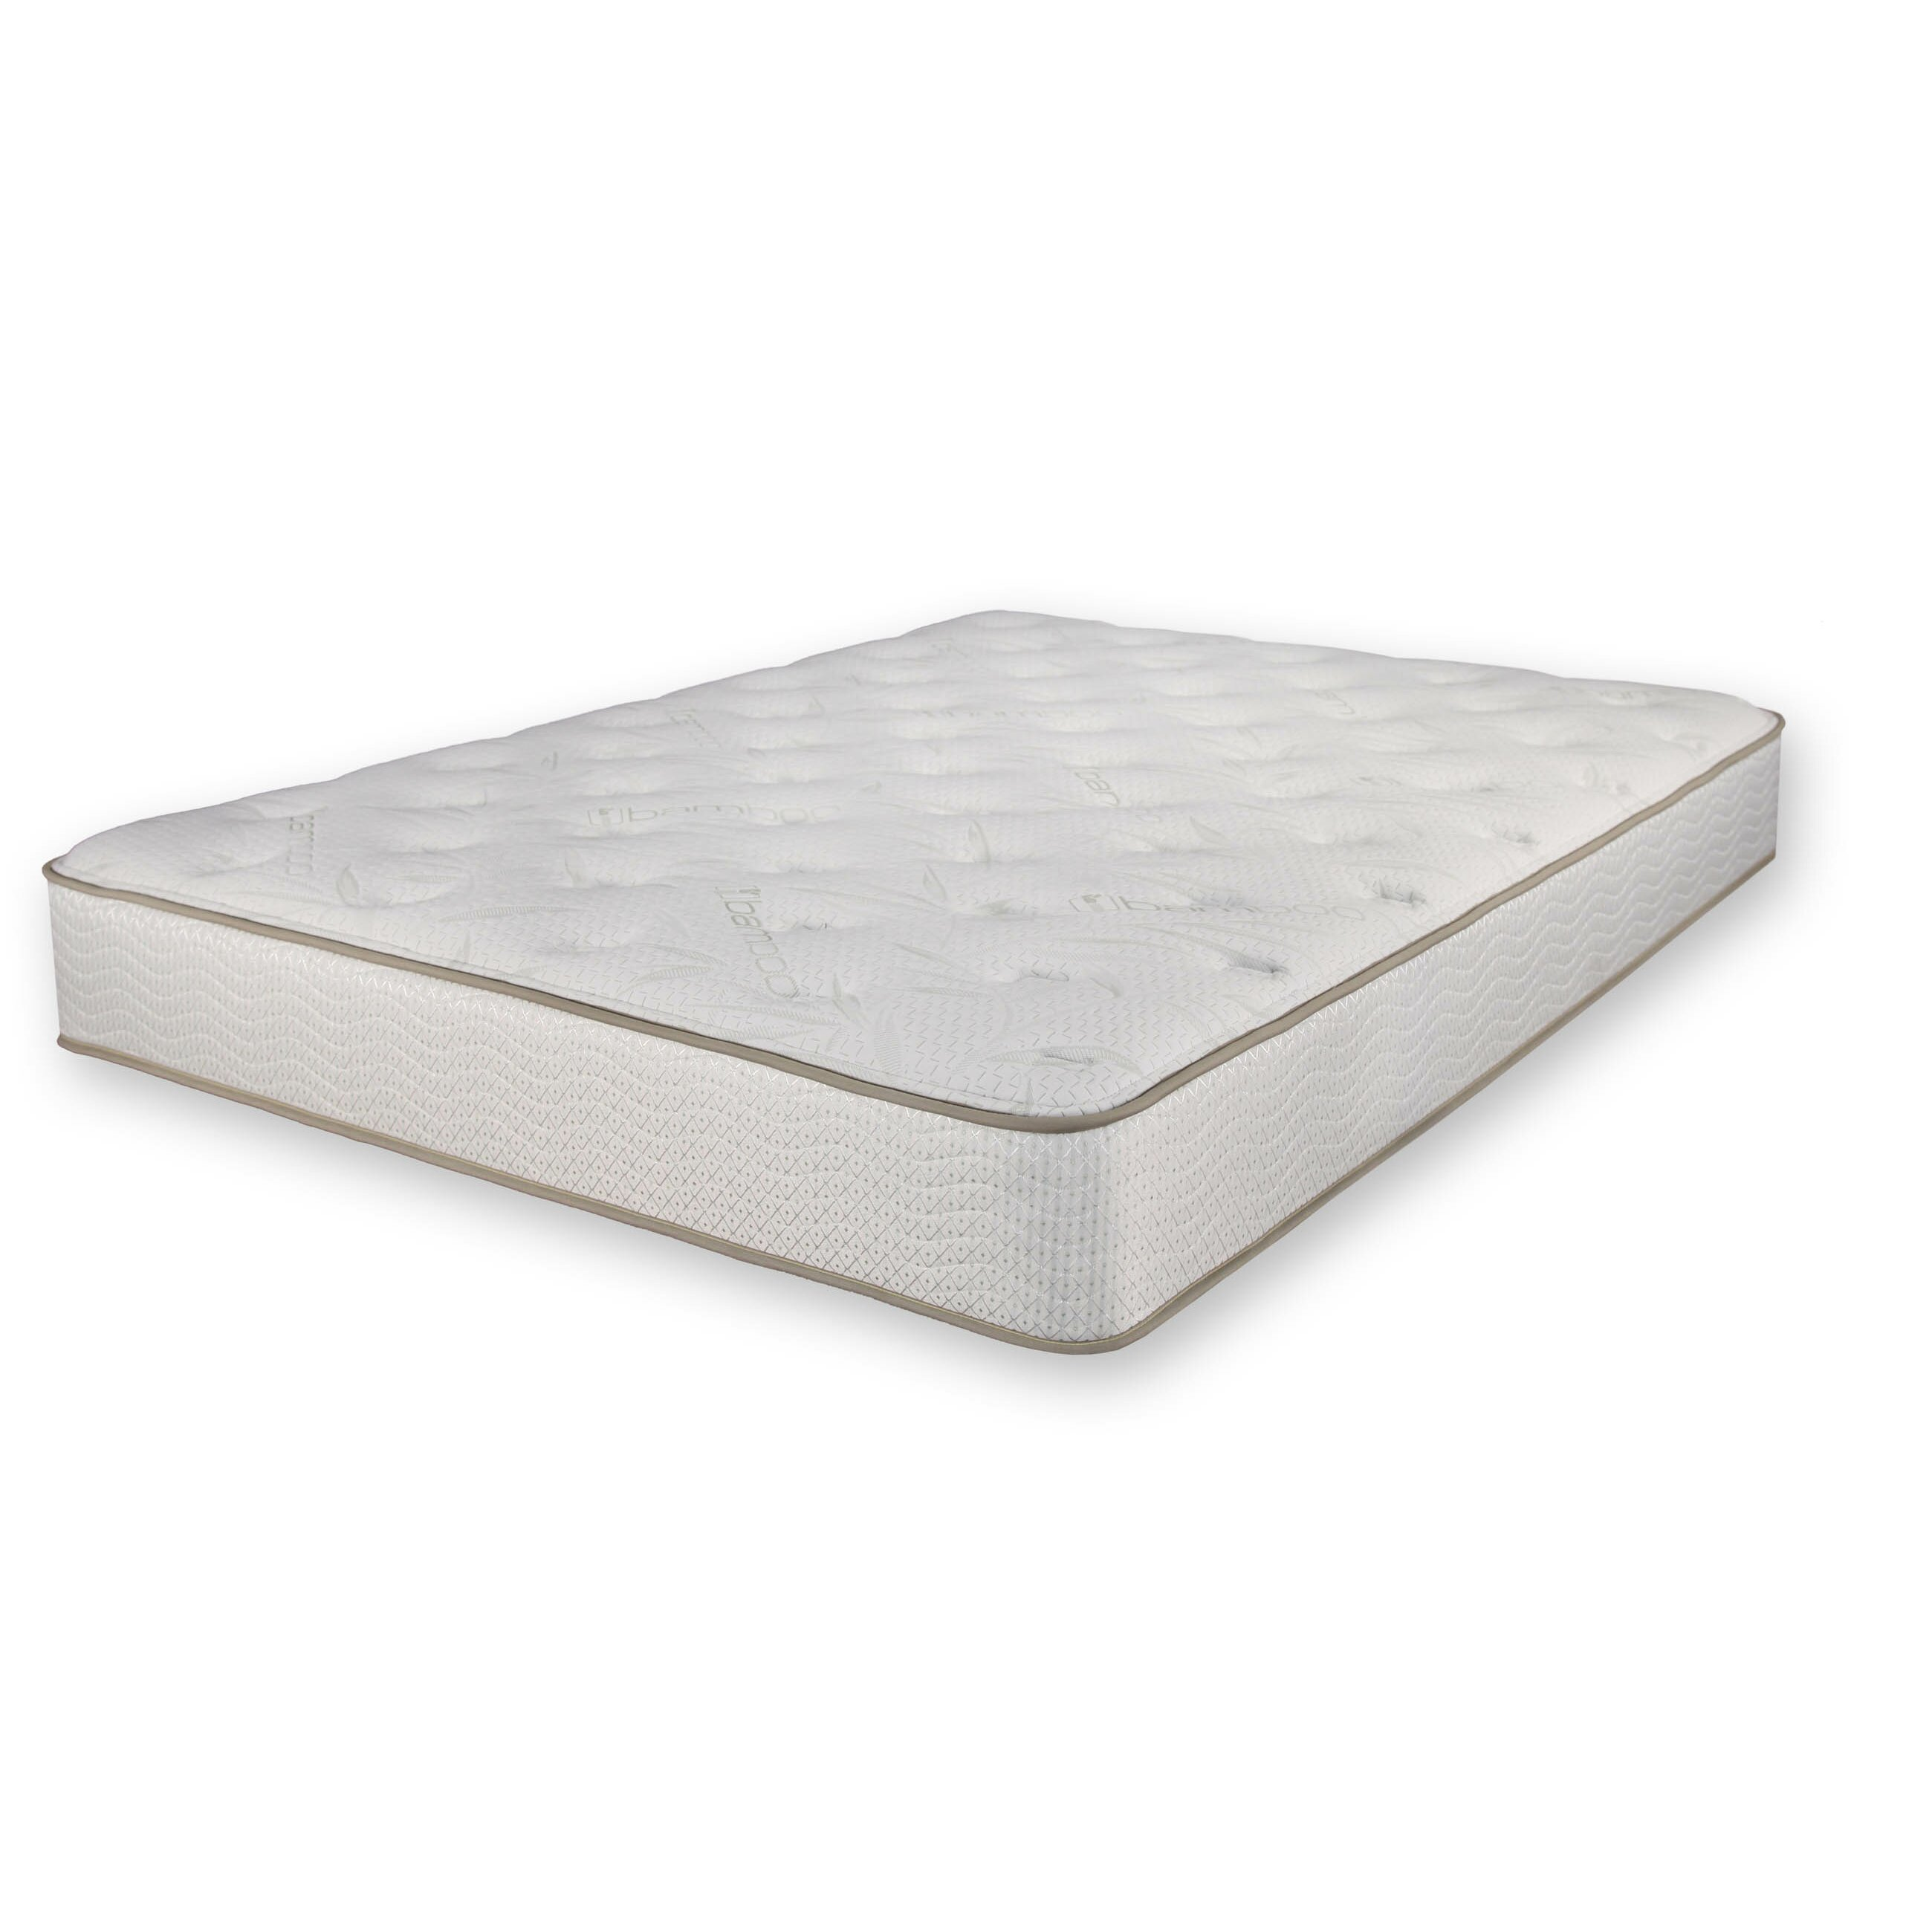 Brooklyn bedding ultimate dreams 10quot latex foam mattress for Brooklyn bedding sale